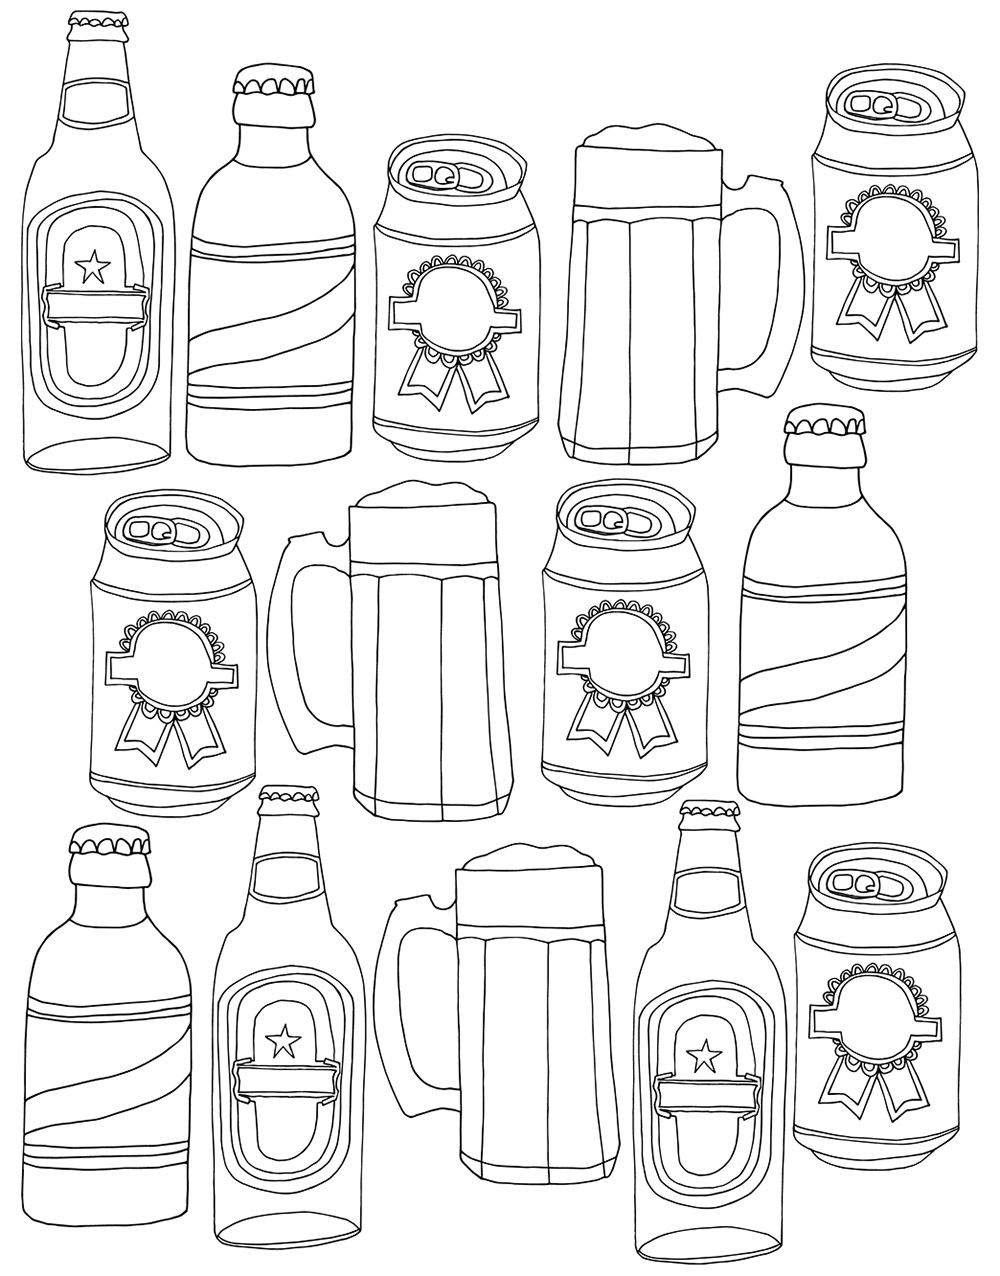 Beer drawings from my sketchbook, that I scanned and turned into vectors.